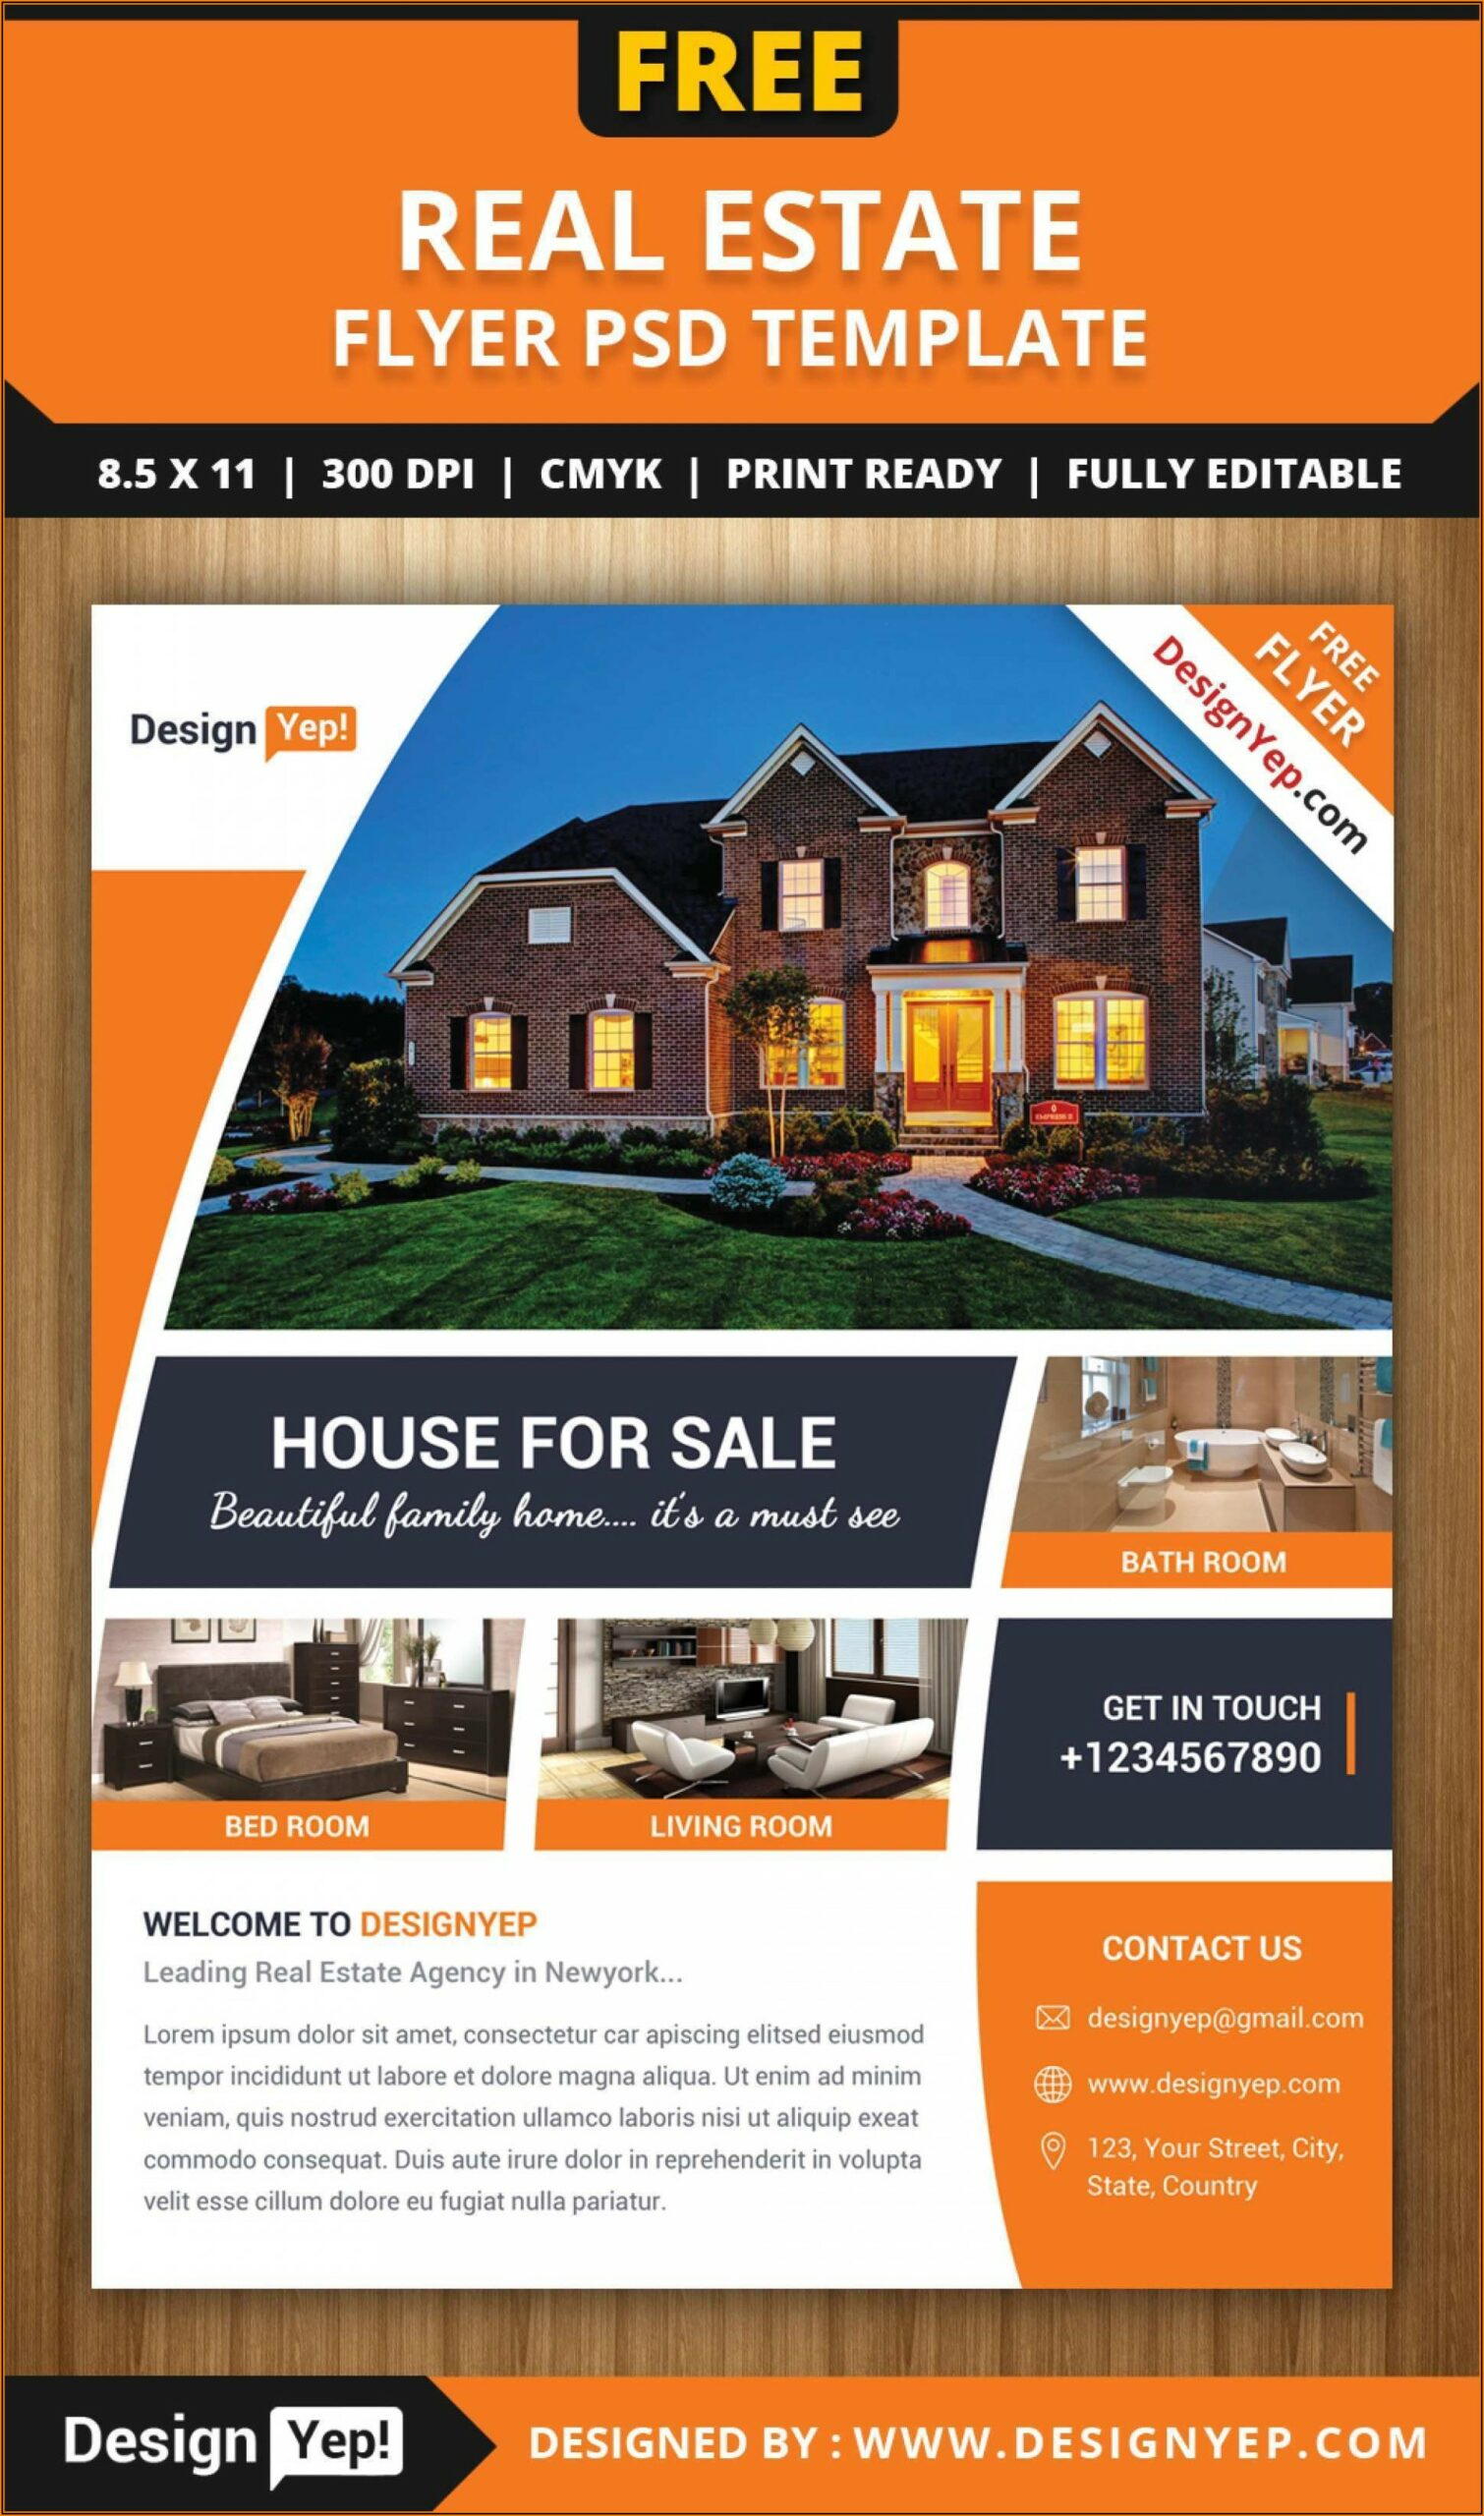 Word Template For Real Estate Flyer